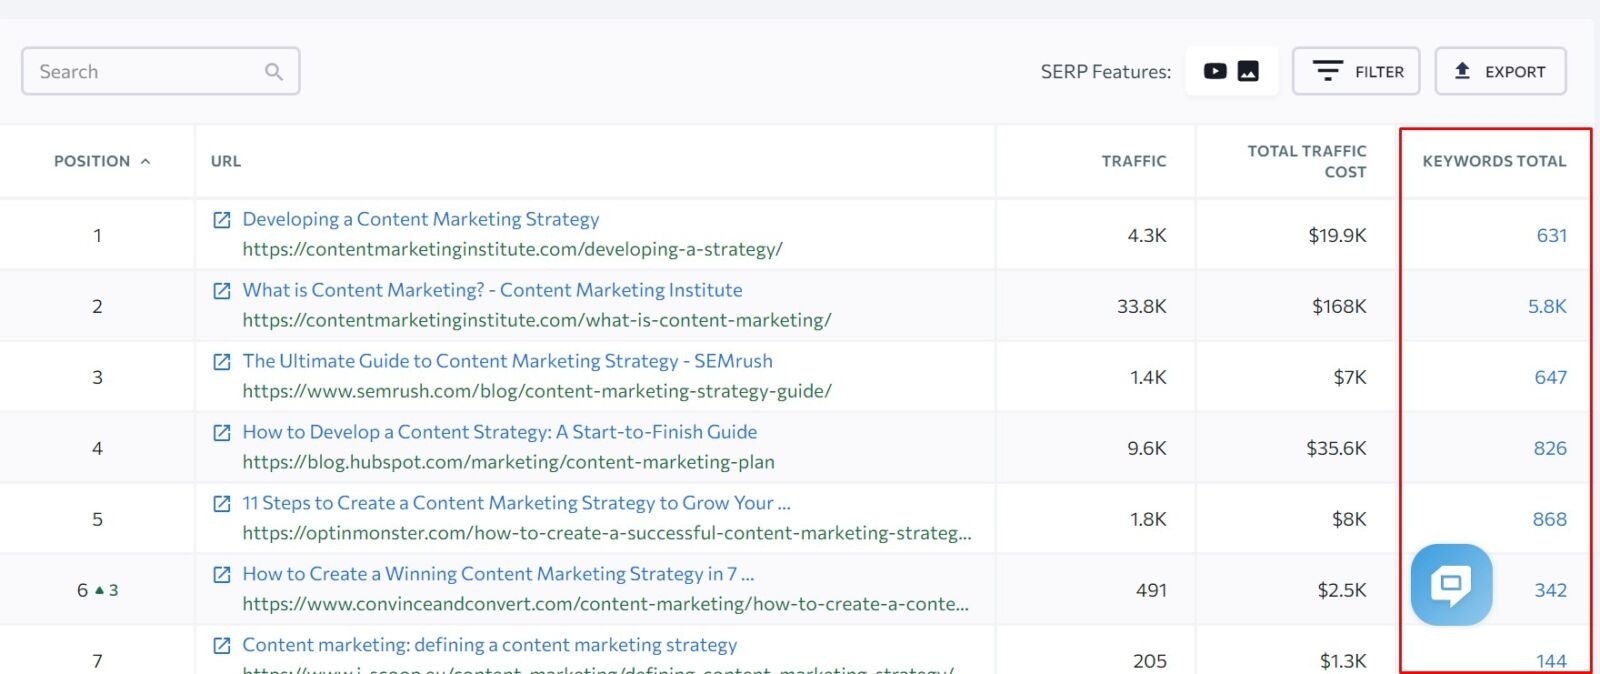 keywords total and competitors pages and their seo keywords